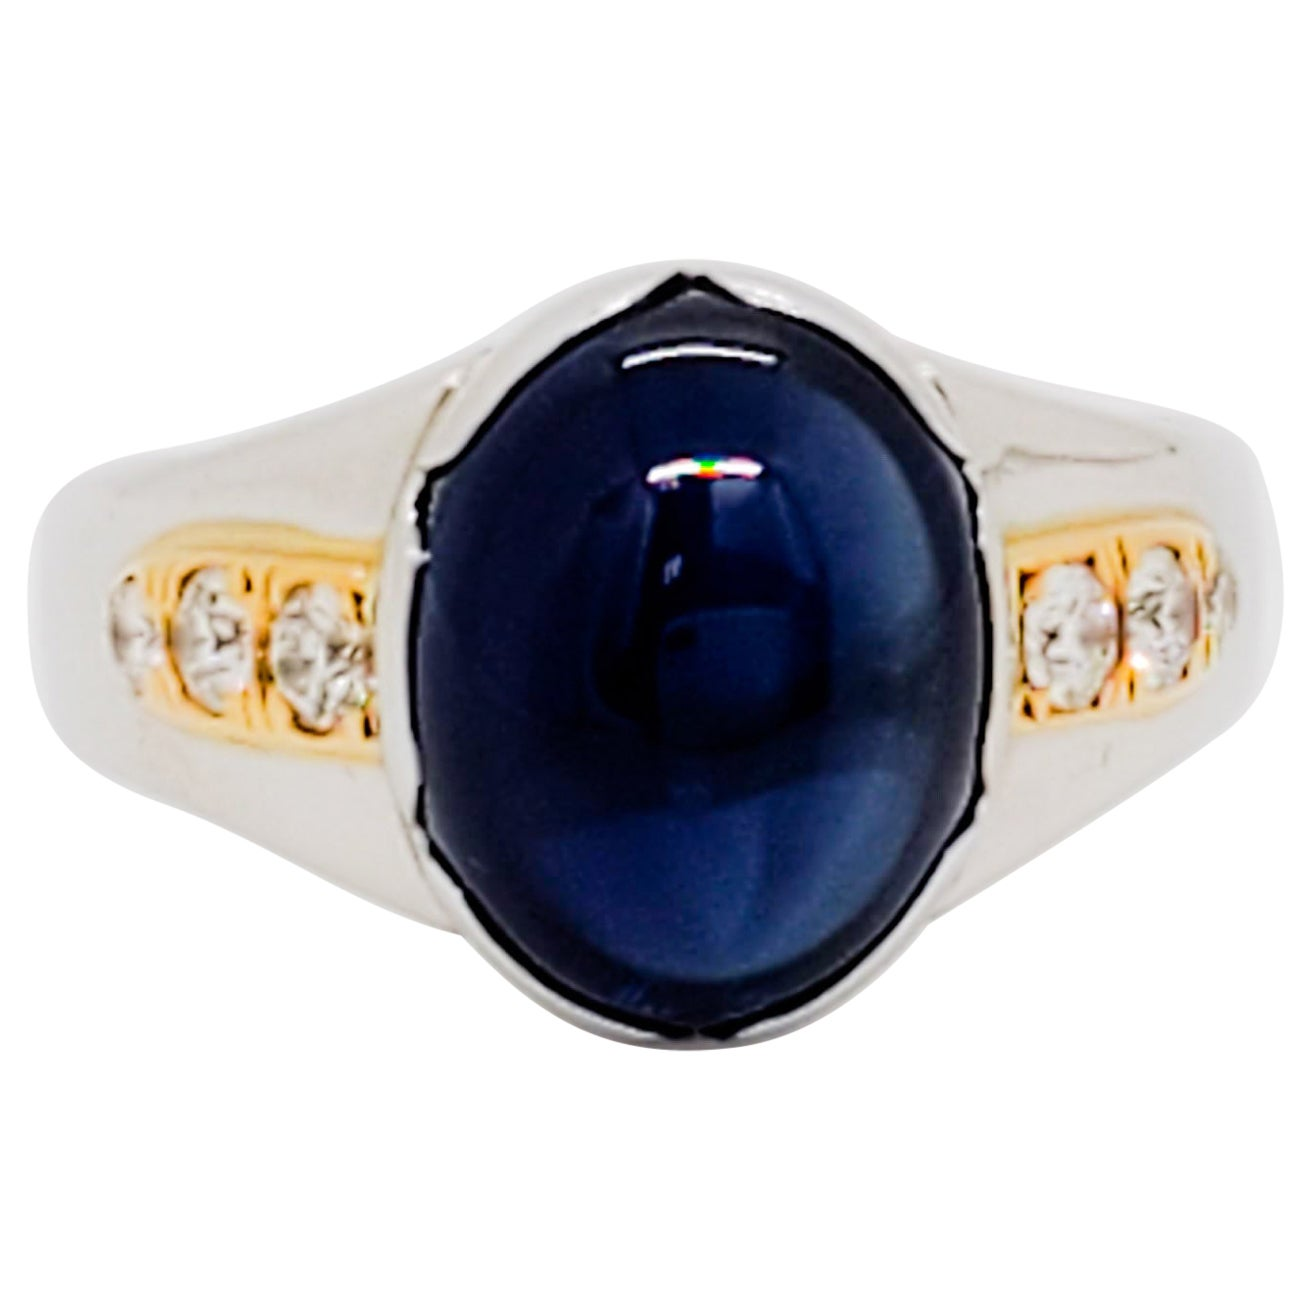 Blue Sapphire Oval Cabochon and White Diamond Cocktail Ring